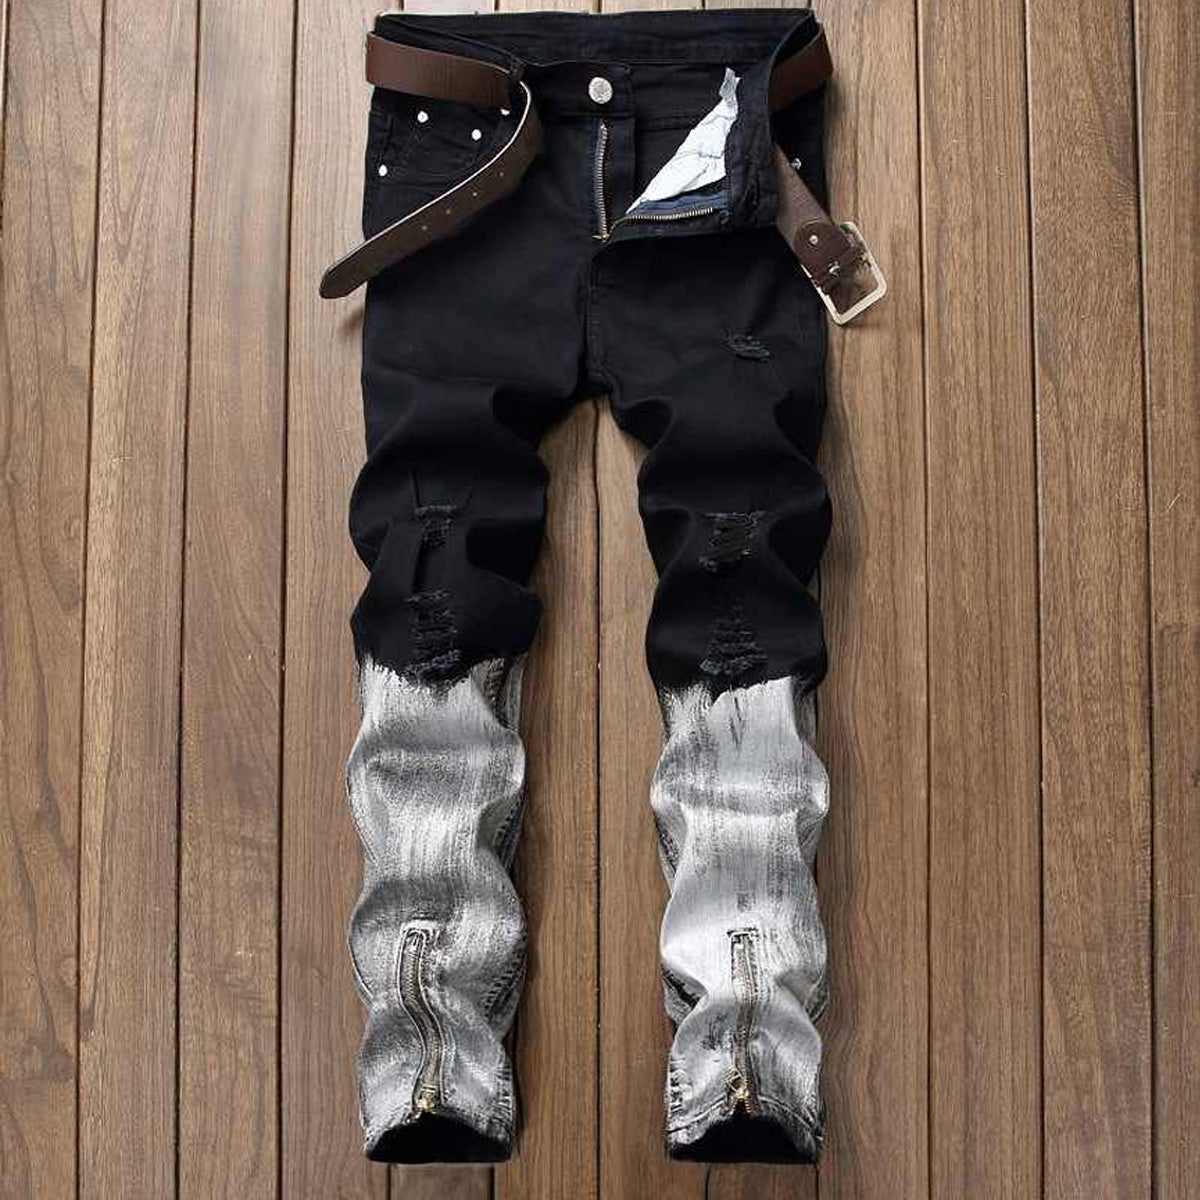 Men's Full Length Jeans with Zippers at Ankles